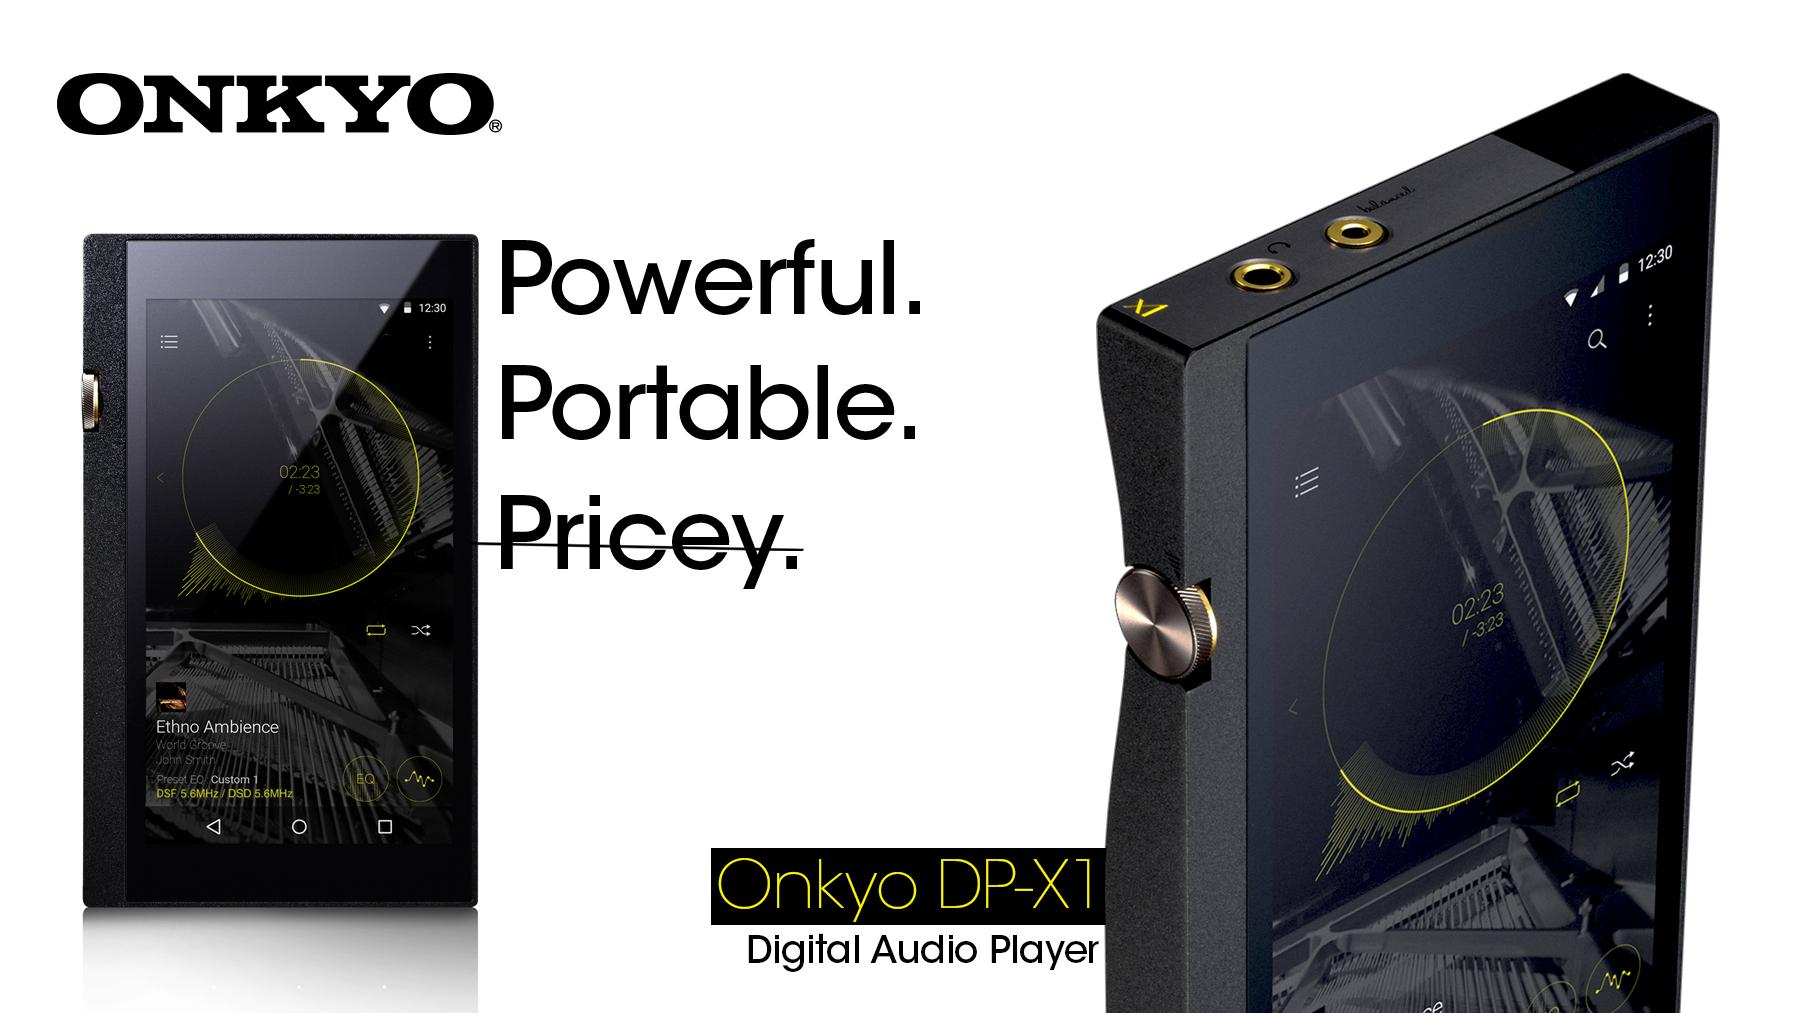 Onkyo DP-X1 Digital Audio Player